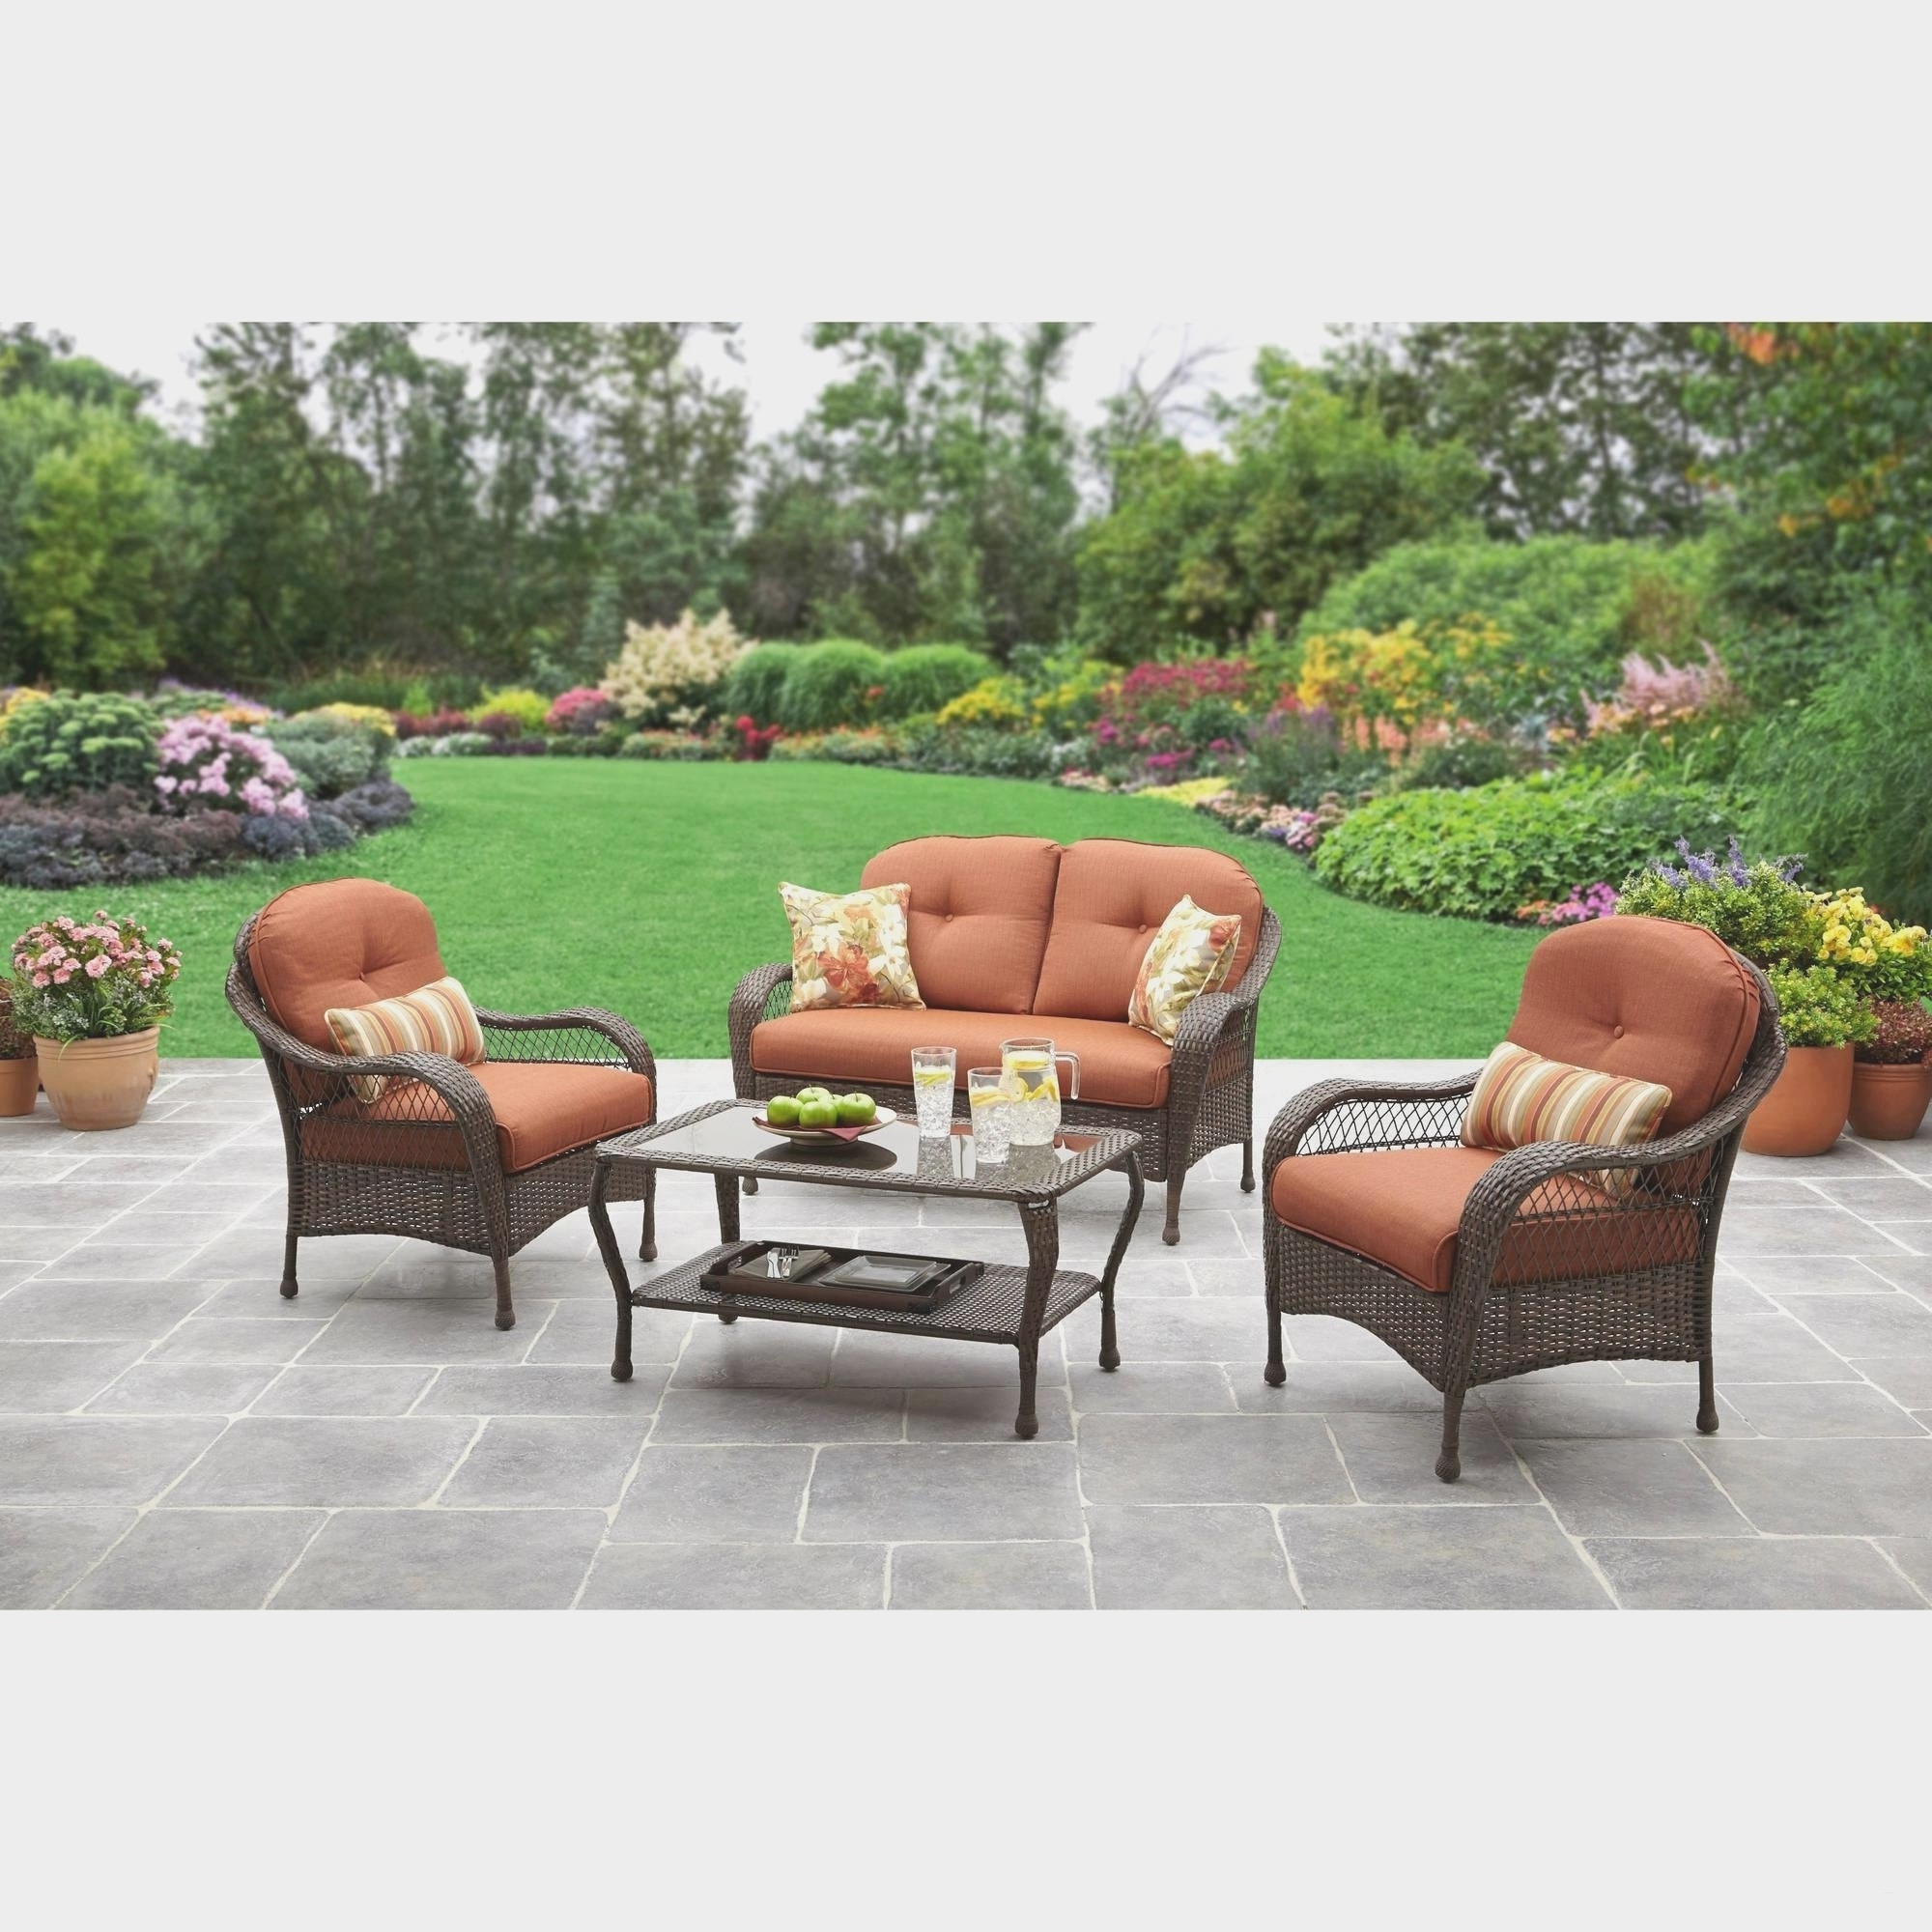 Wrought Iron Outdoor Furniture Lowes Intended For Most Current Patio Conversation Sets At Lowes (View 7 of 15)